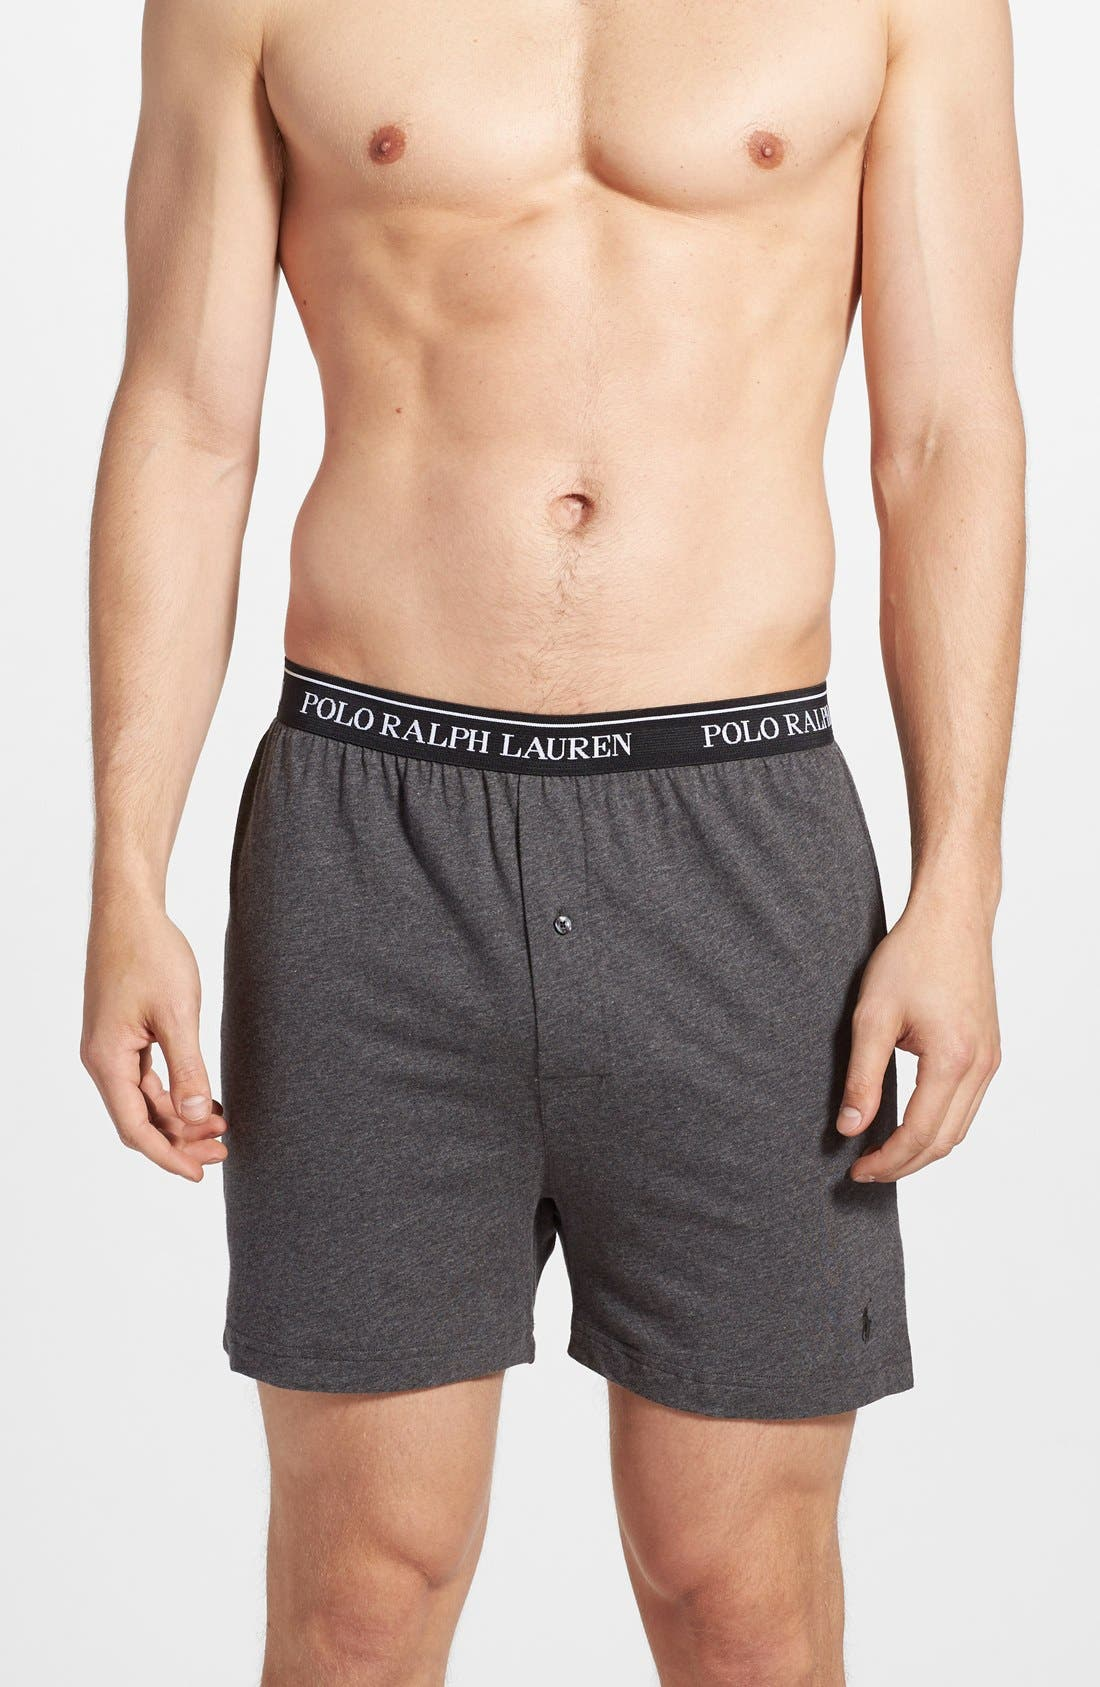 Men's Underwear: Boxers, Briefs, Thongs & Trunks